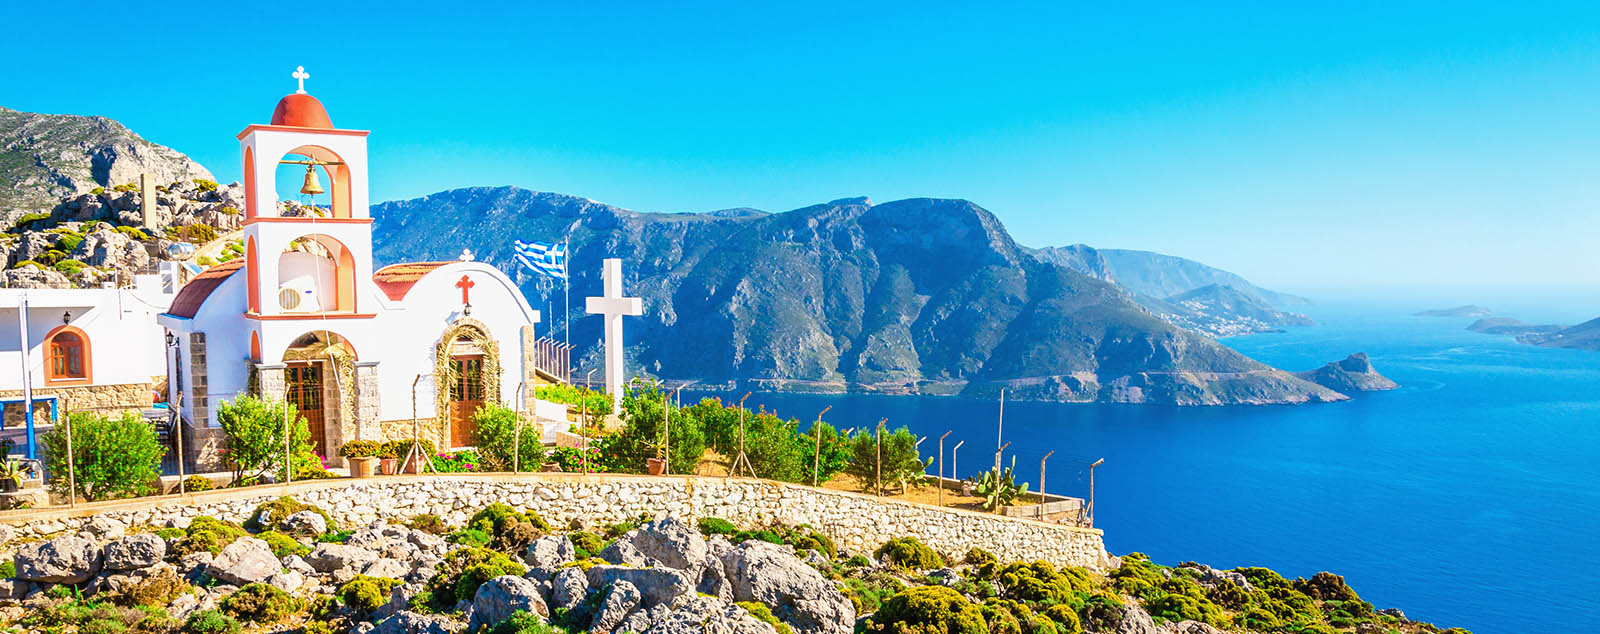 A beautiful white church perched atop a cliff, with turquoise waters in the background